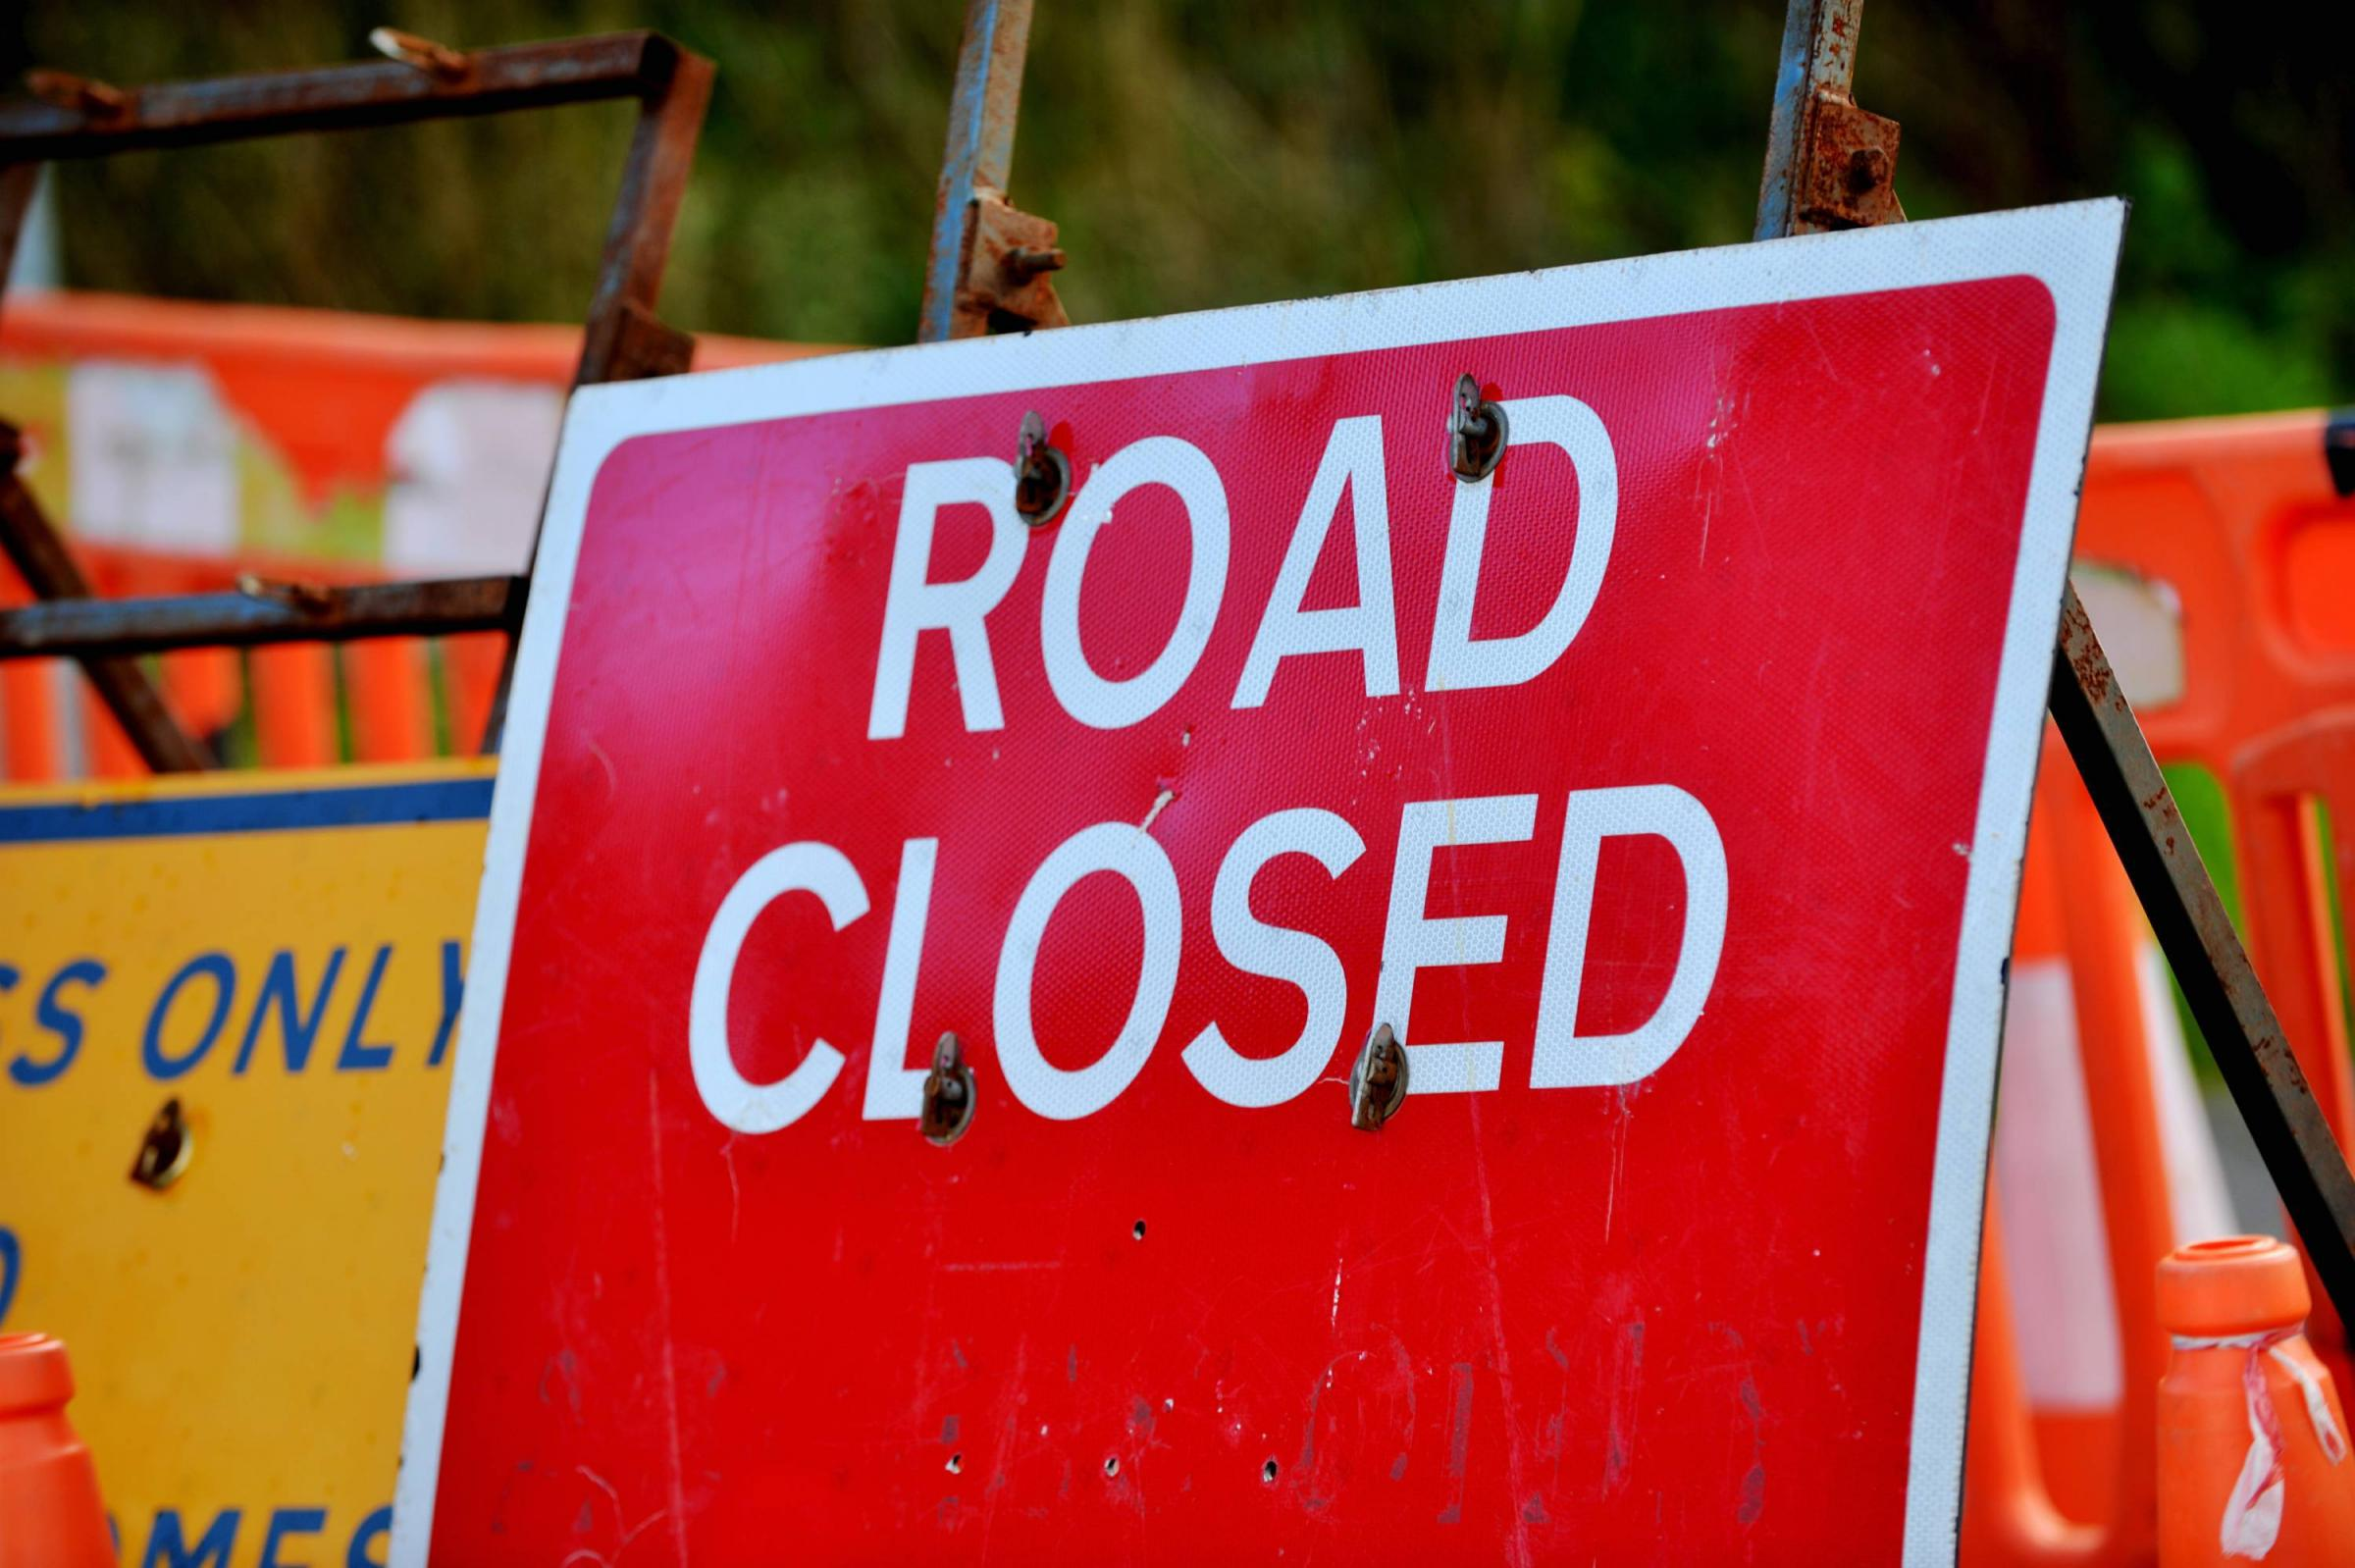 Busy stretch of Tranent road to be shut for gas works